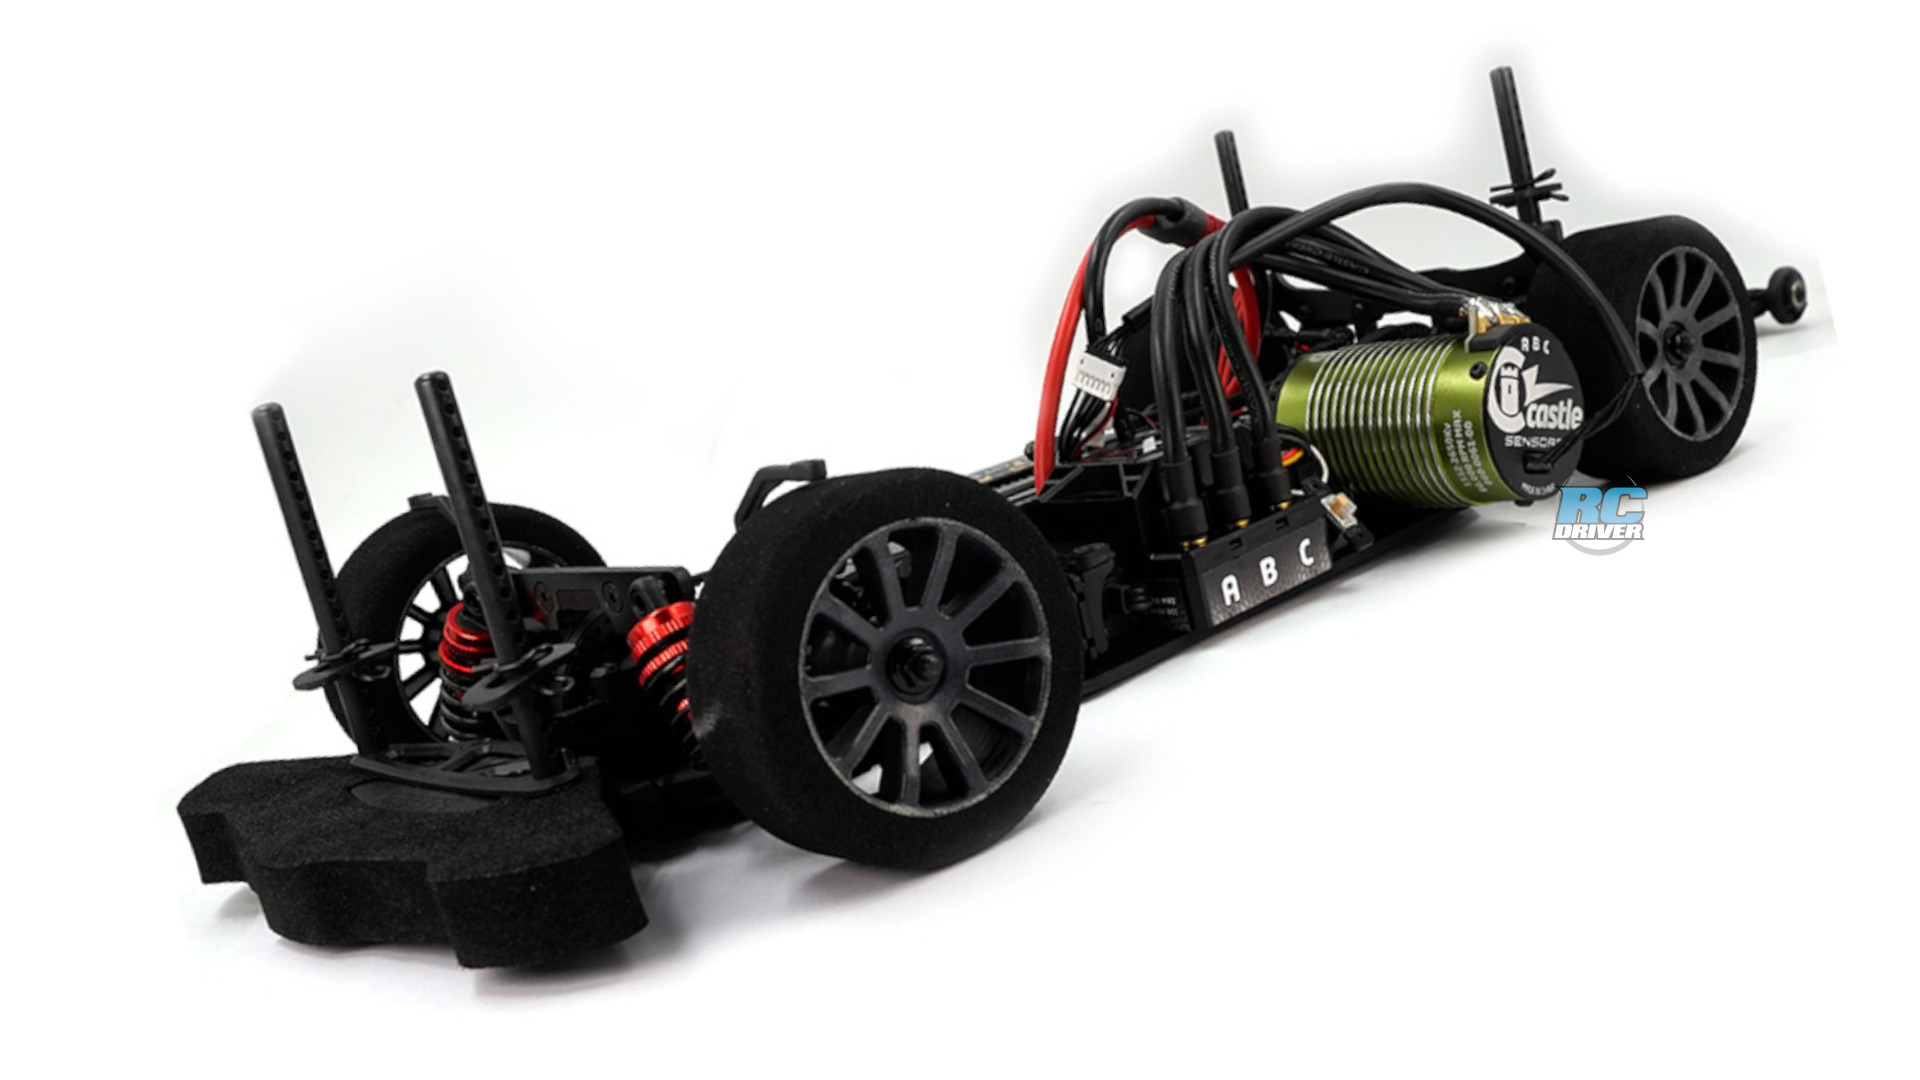 Xpress Dragnalo DR1S 1/10 Touring And Drag Car